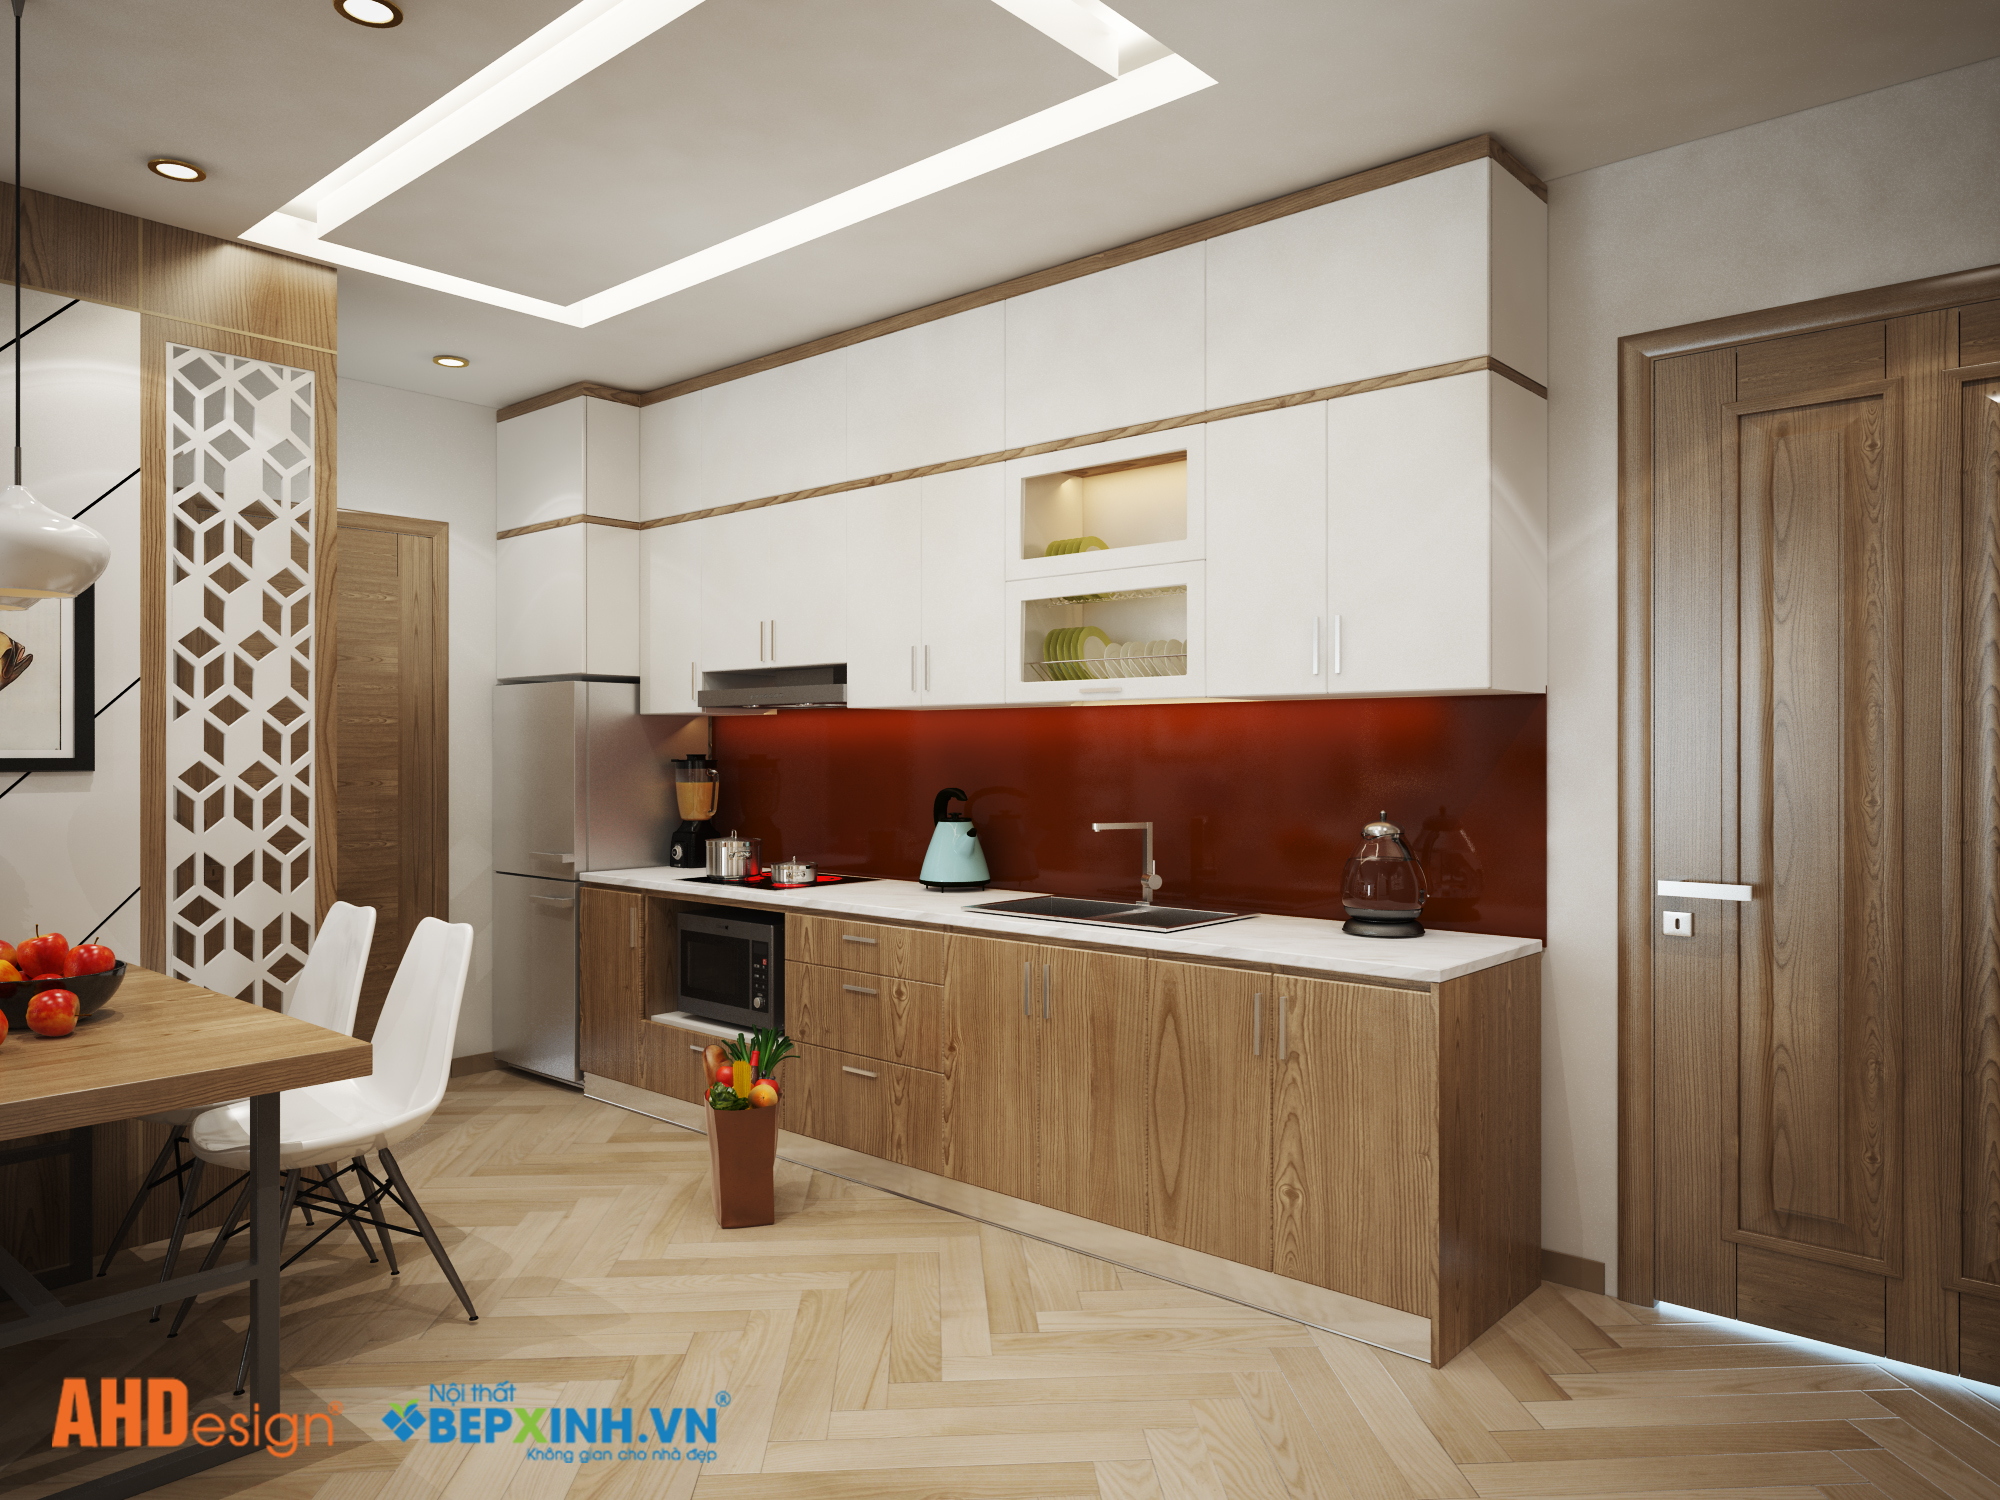 noi-that-can-ho-ecolife-75m2-khach-bep-4